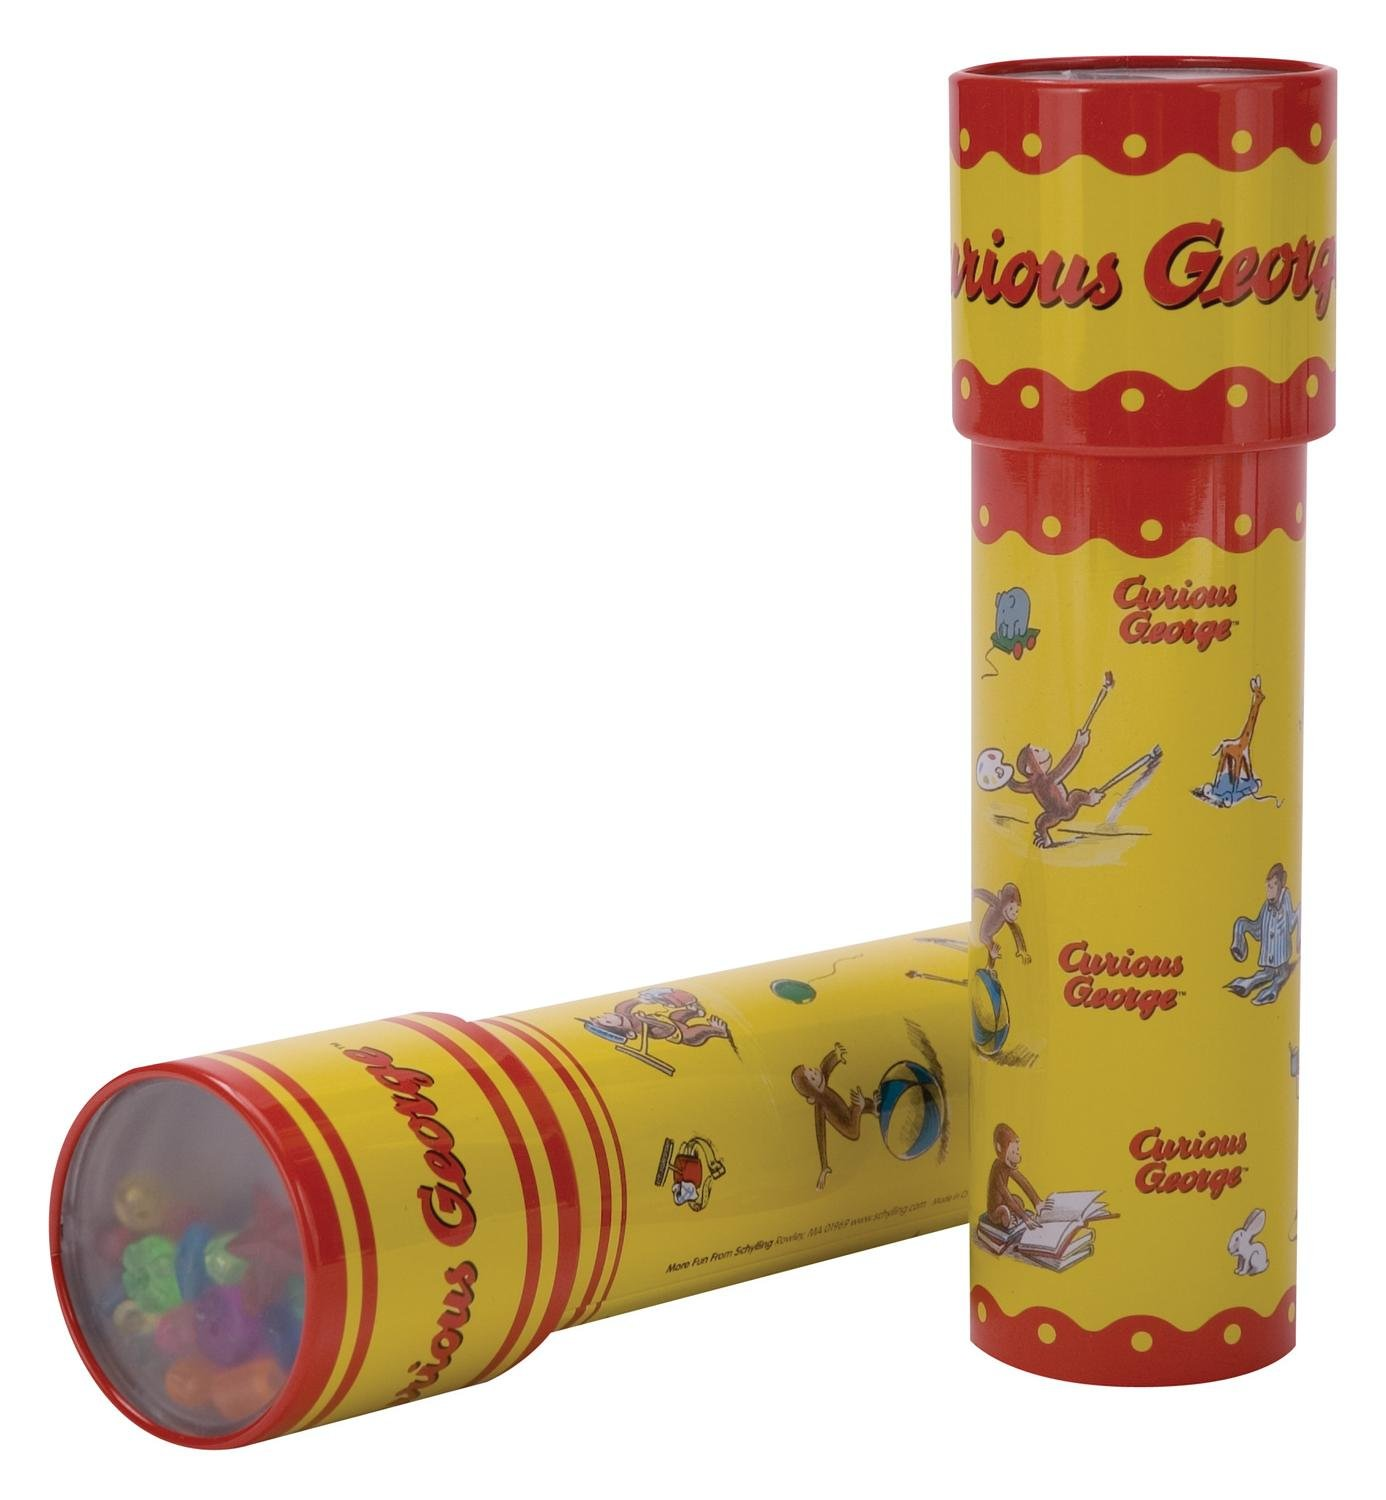 Curious George Tin Kaleidoscope - only one included